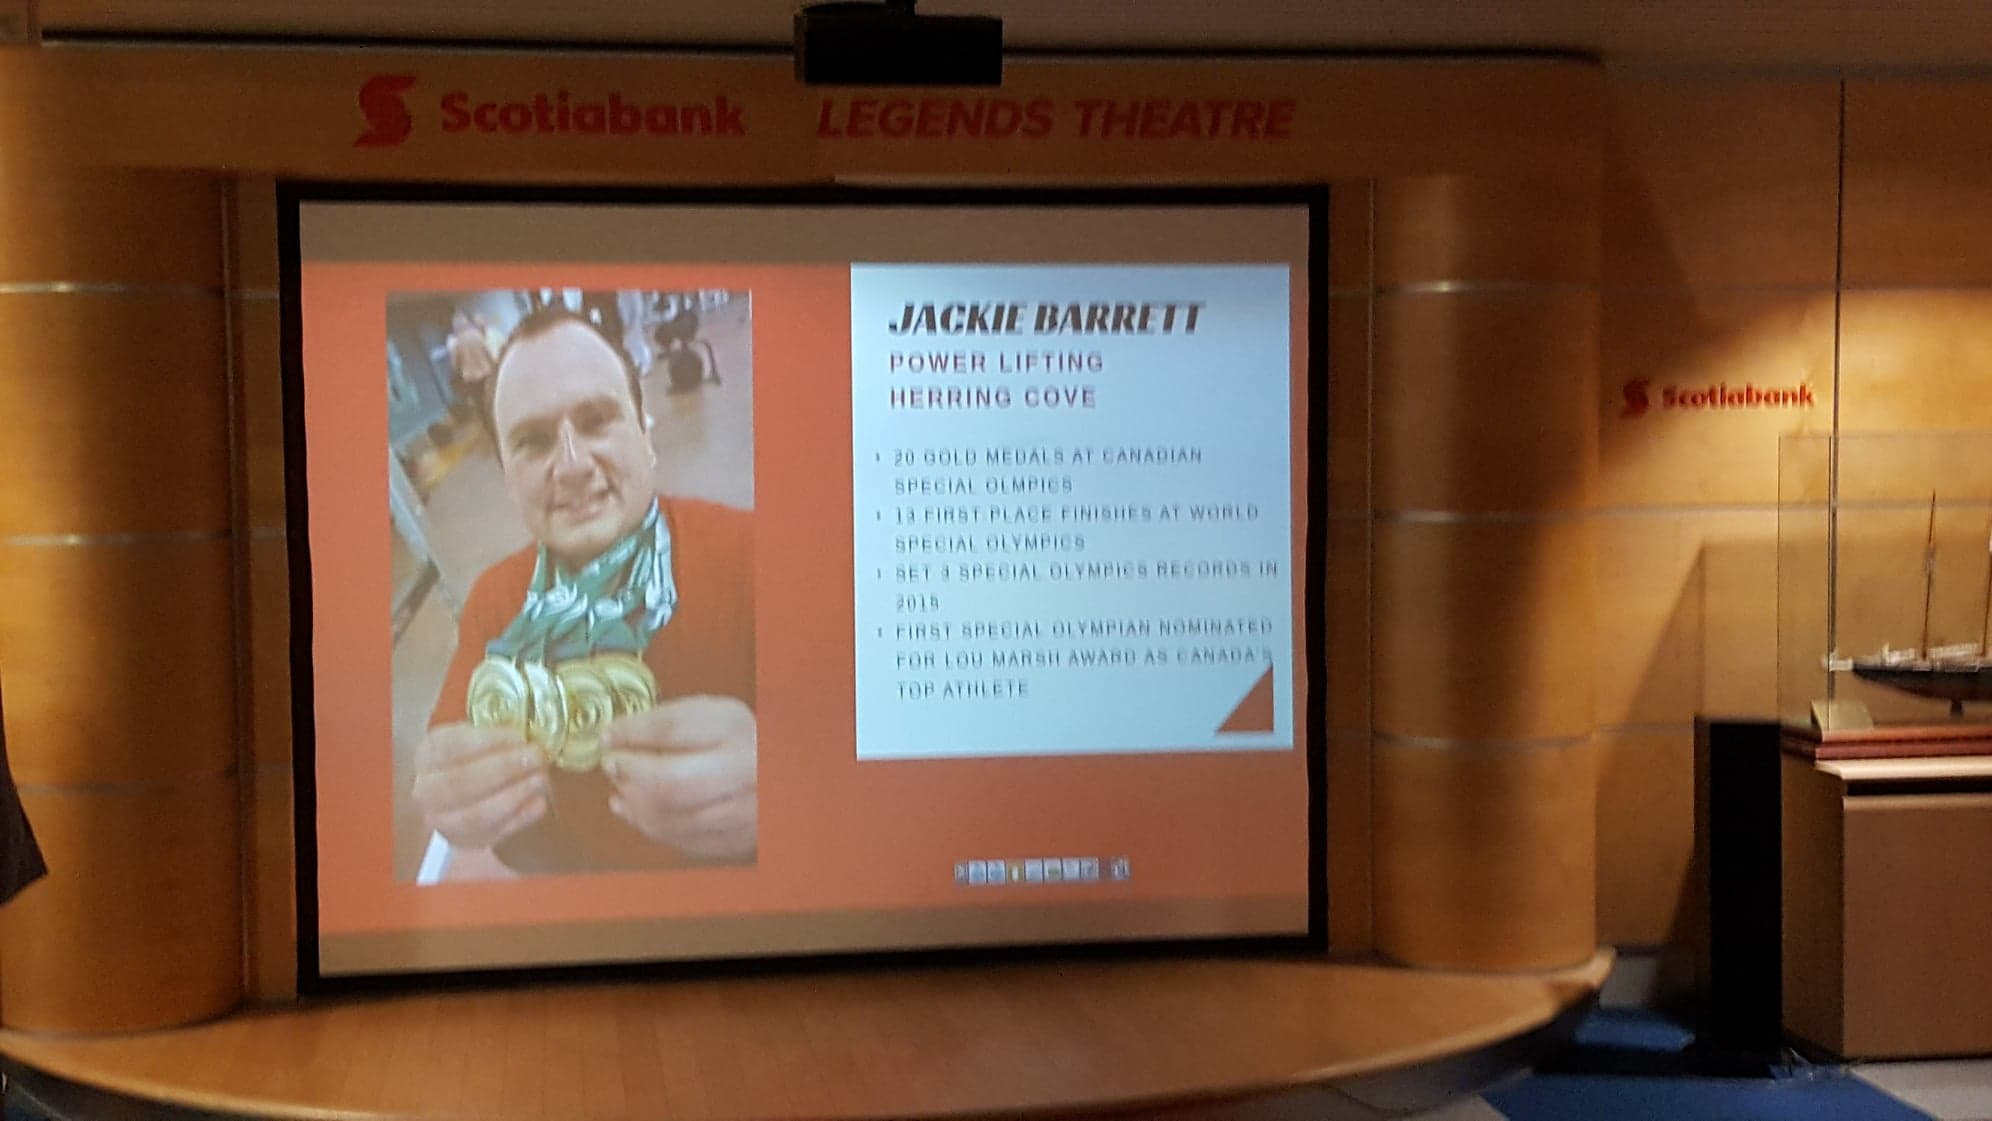 Academy Canada Webmaster, Jack Barrett, To Be Inducted Into